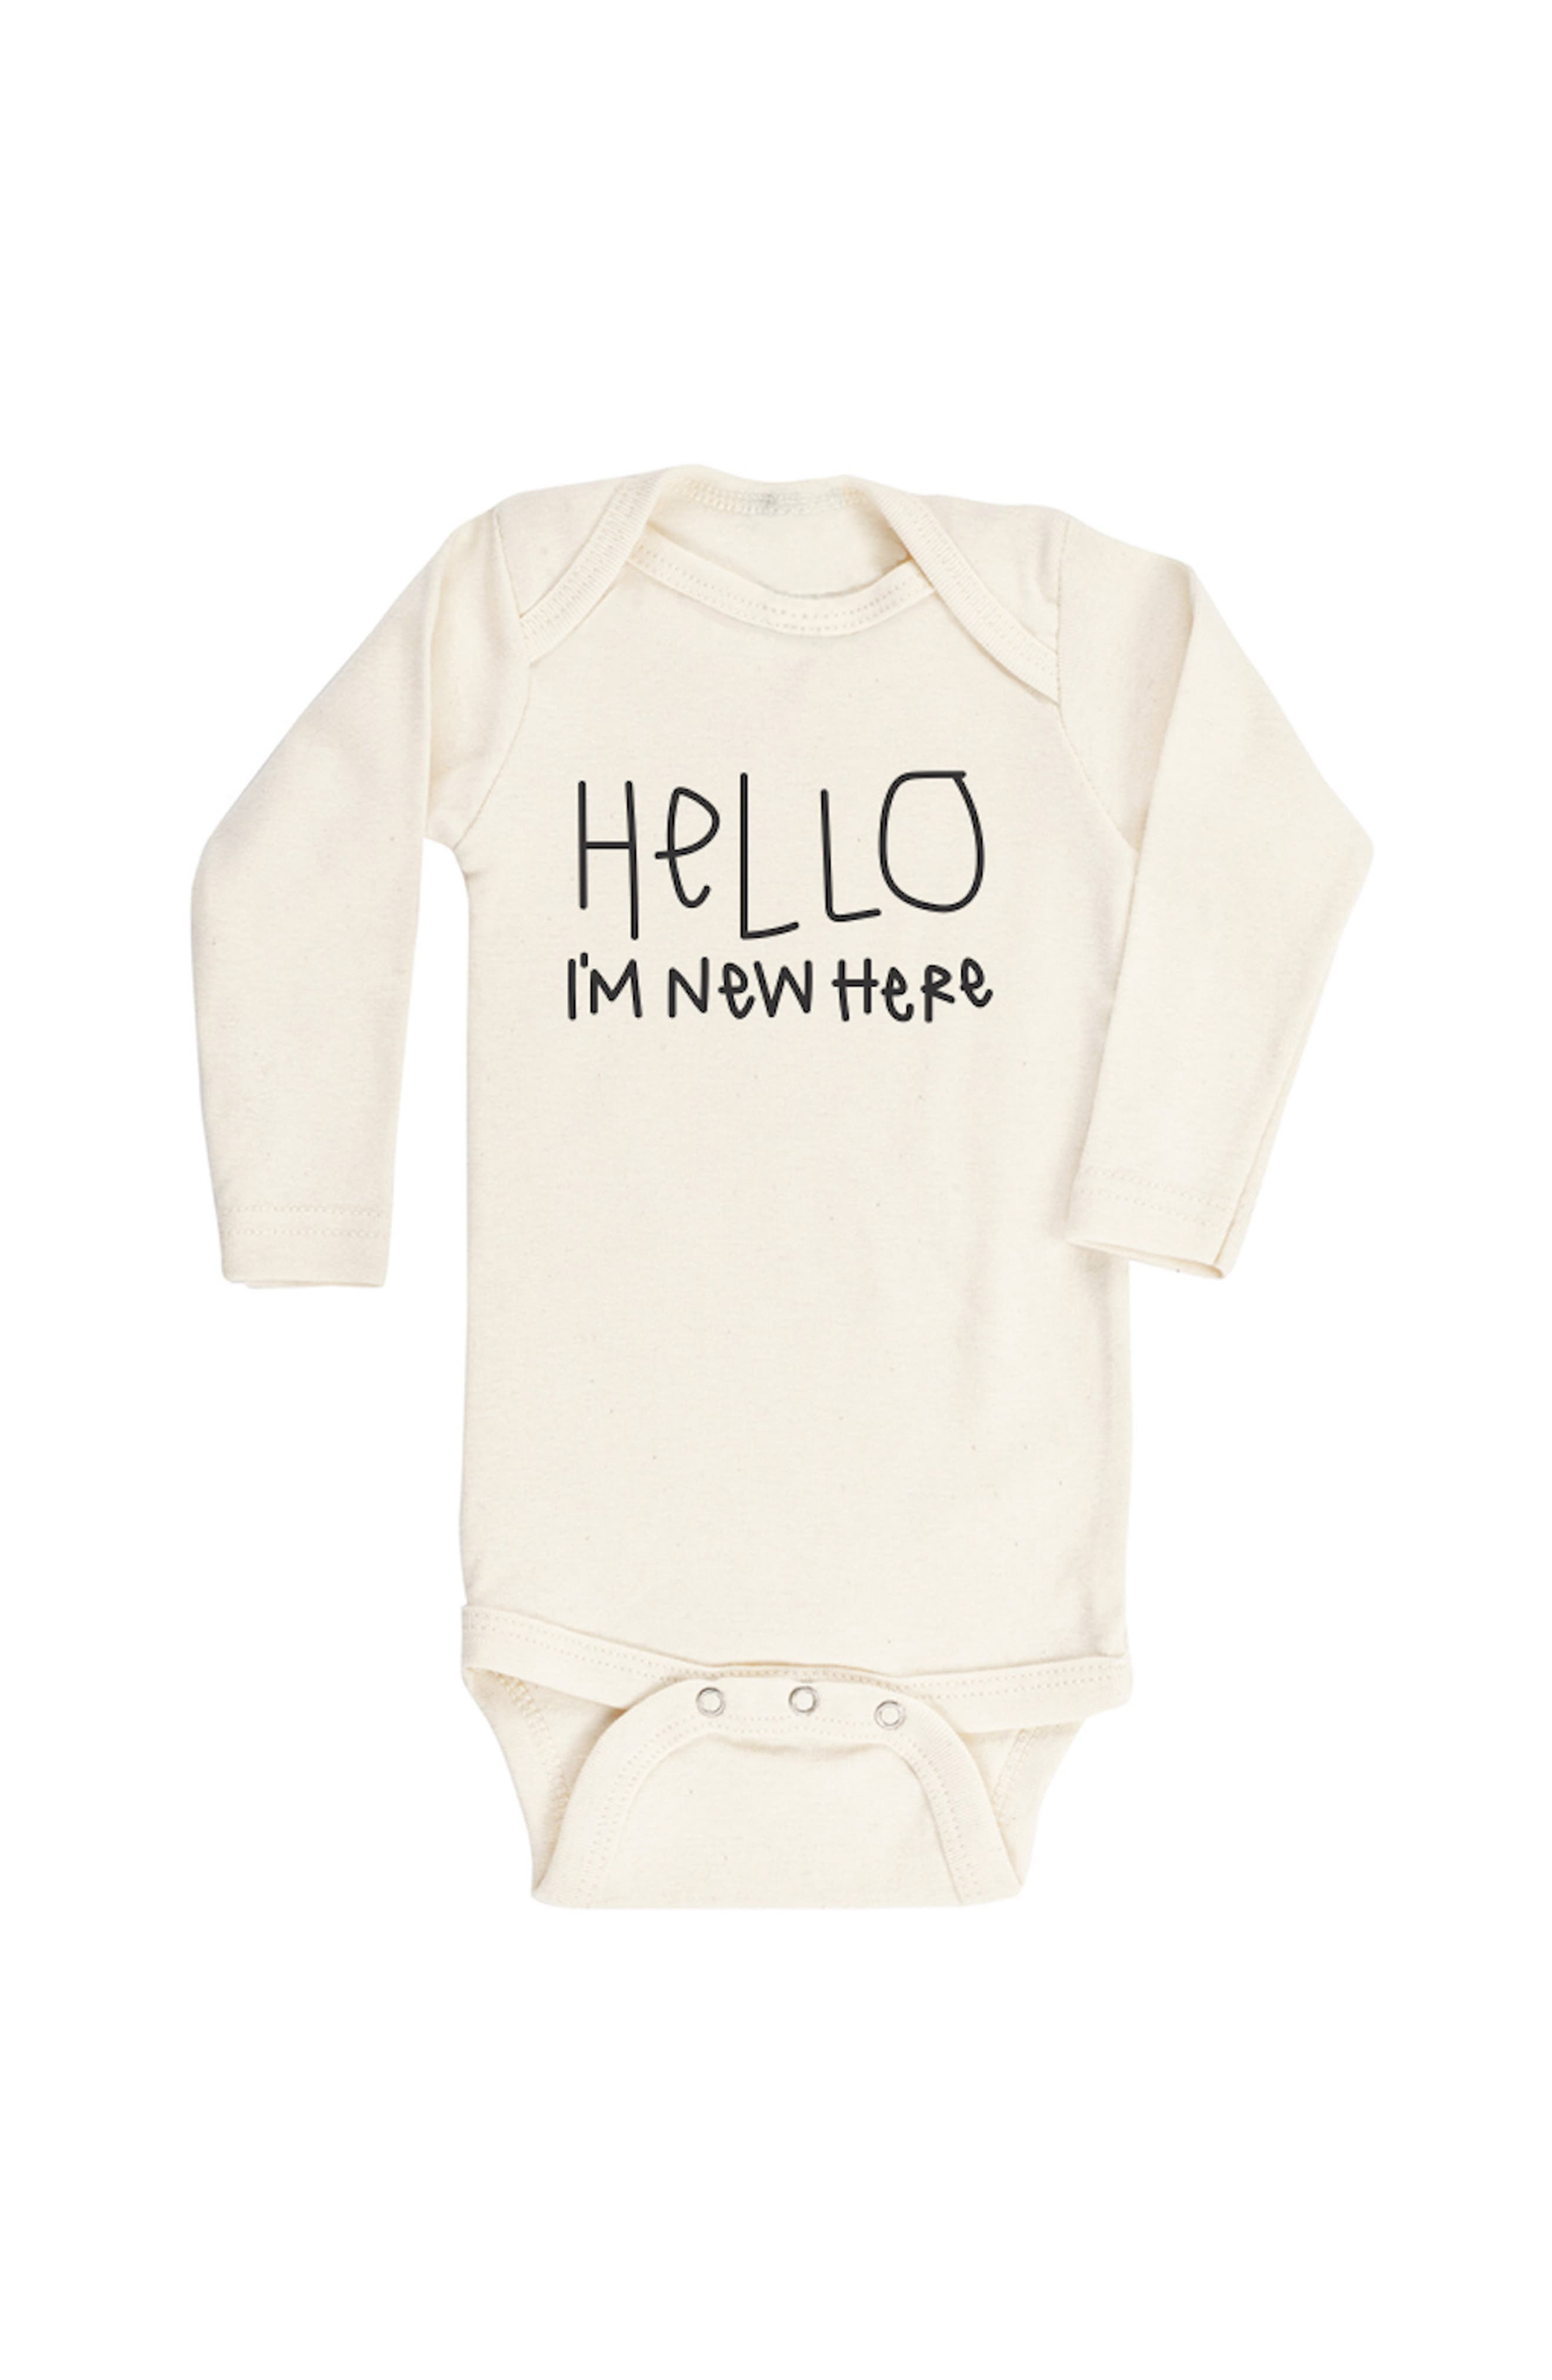 Boys' Clothing (newborn-5t) One-pieces *new* Converse All Star Baby Boy 3 Pack Bodysuit Romper 0-6 Months Set Delicacies Loved By All